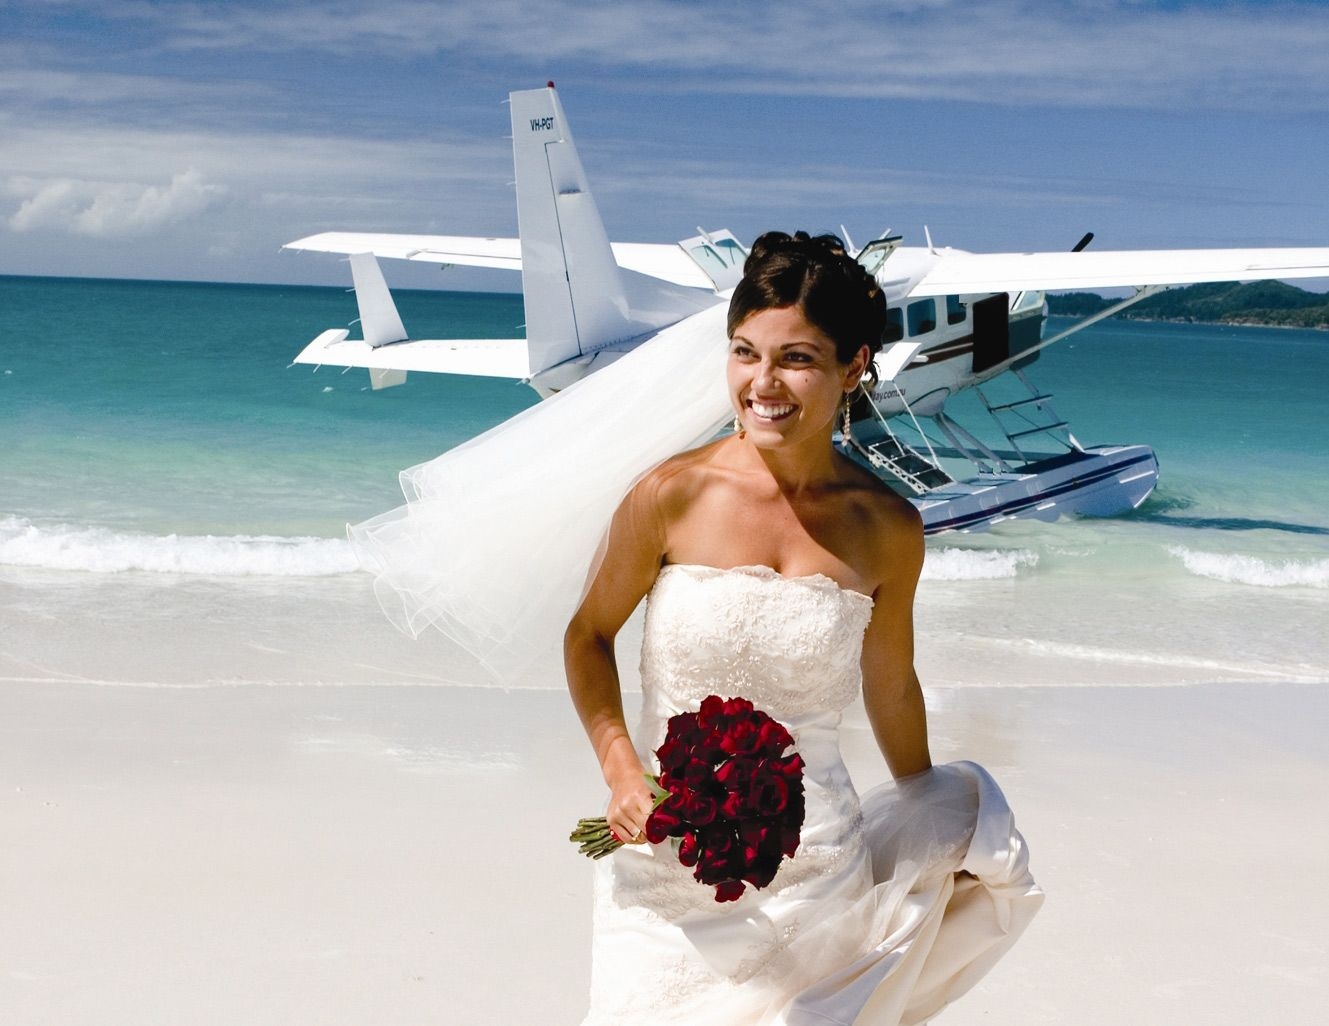 Seaplane Wedding